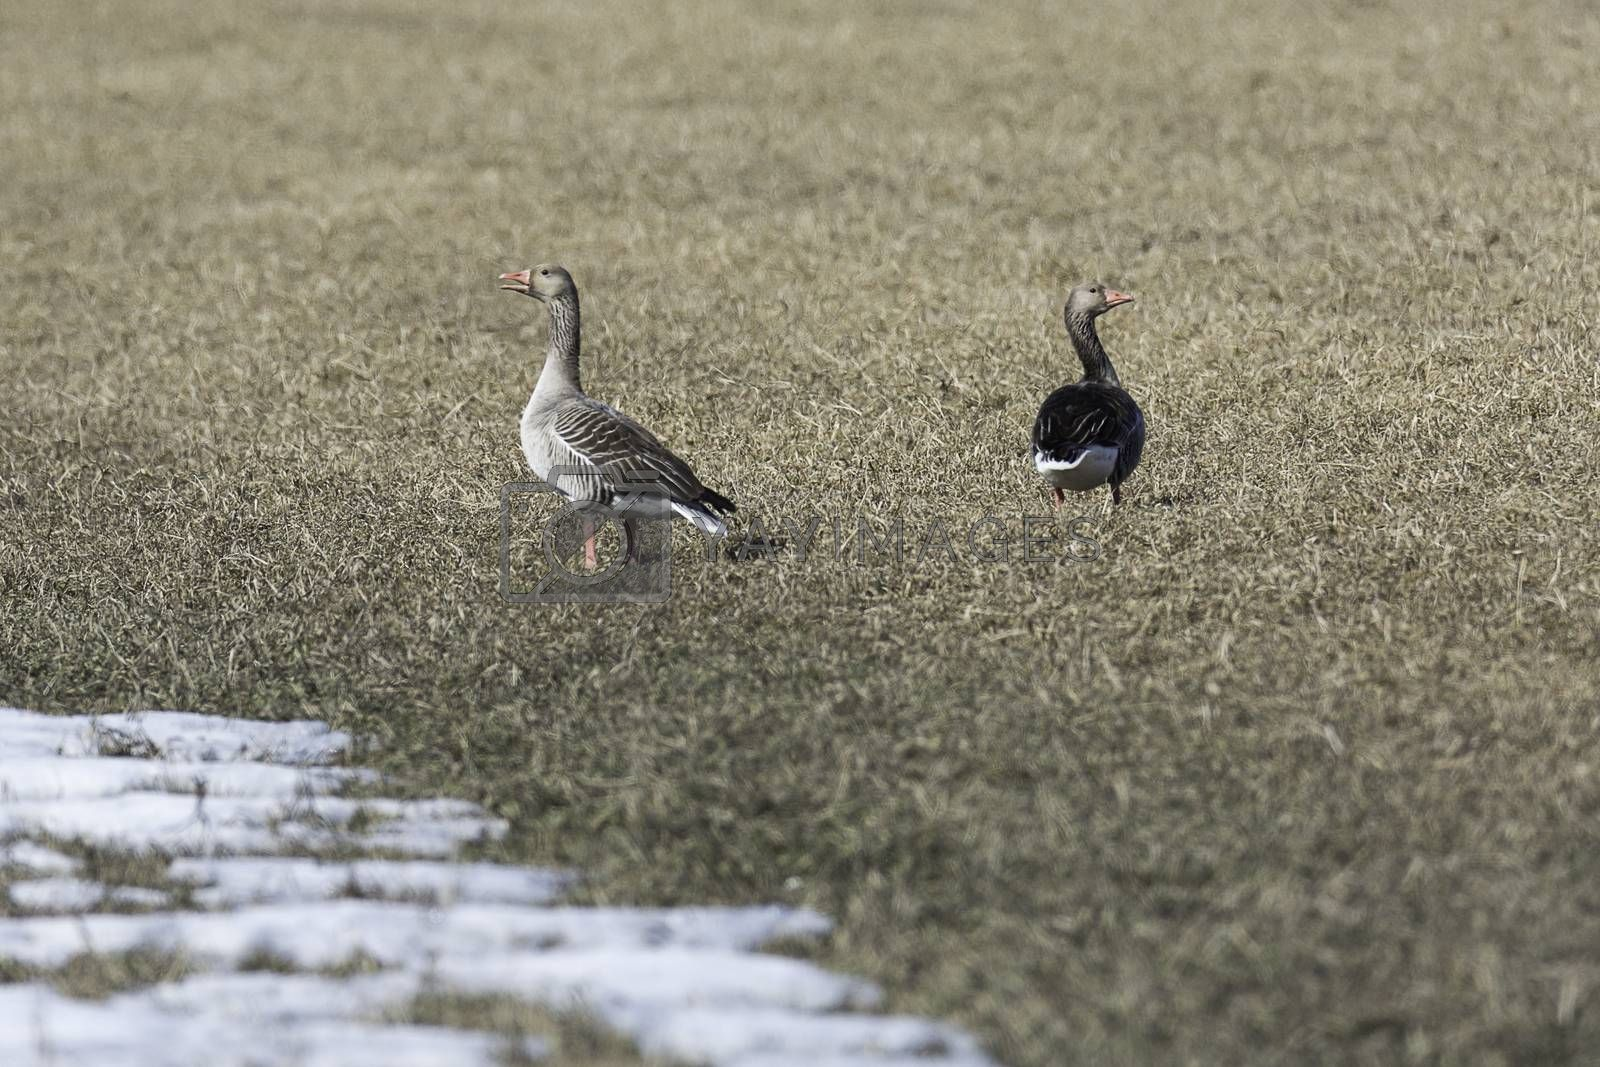 Greylag Goose in Cultivated Field.